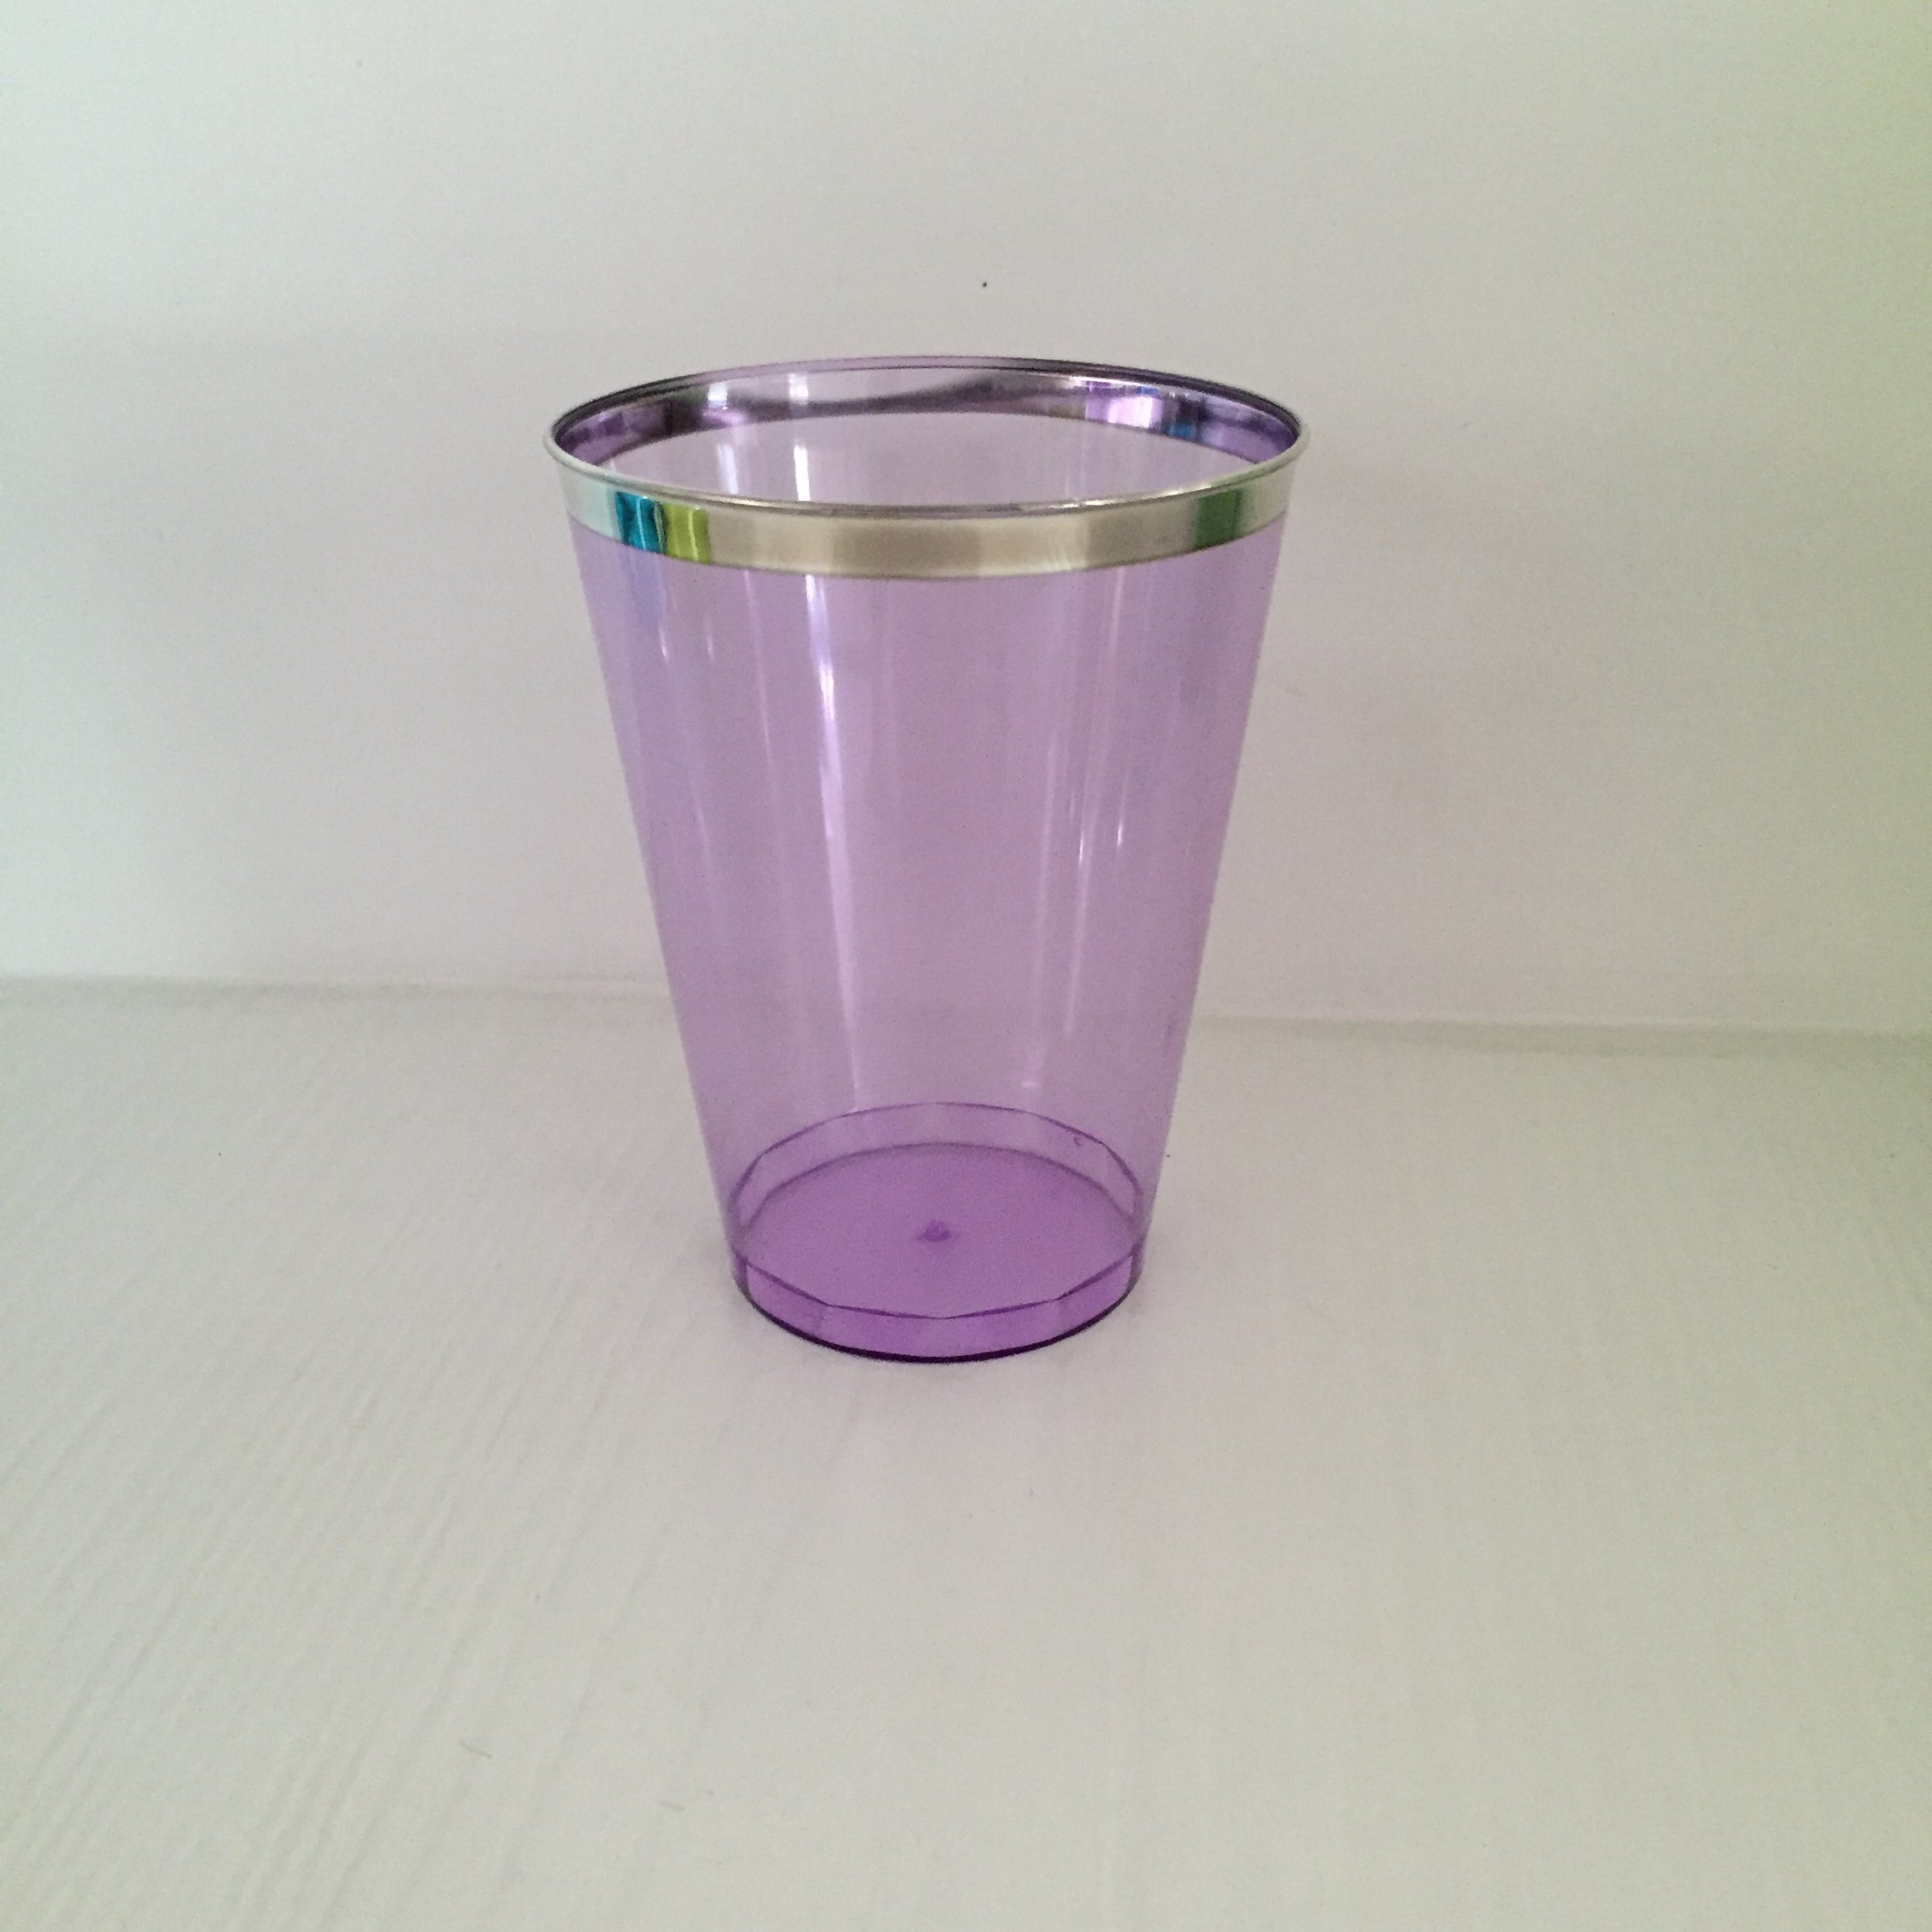 Glass, Mug, Tableware, PS, Transparent, Disposable, Colorful, Injection, GB-02, Plastic Cup, Silver